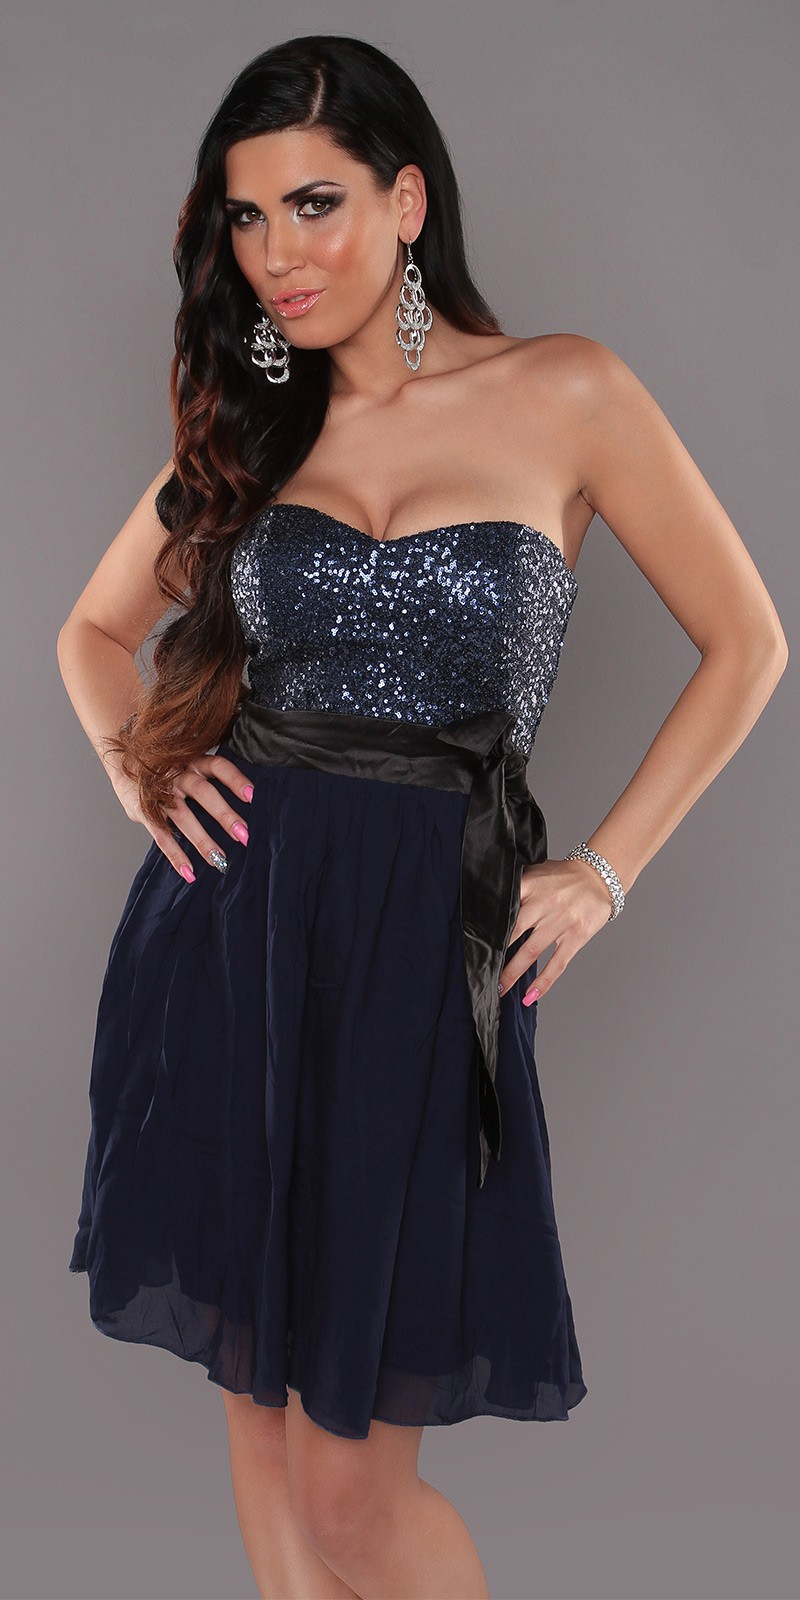 Marine Sexy Bandeau Dress With Sequins And Loop